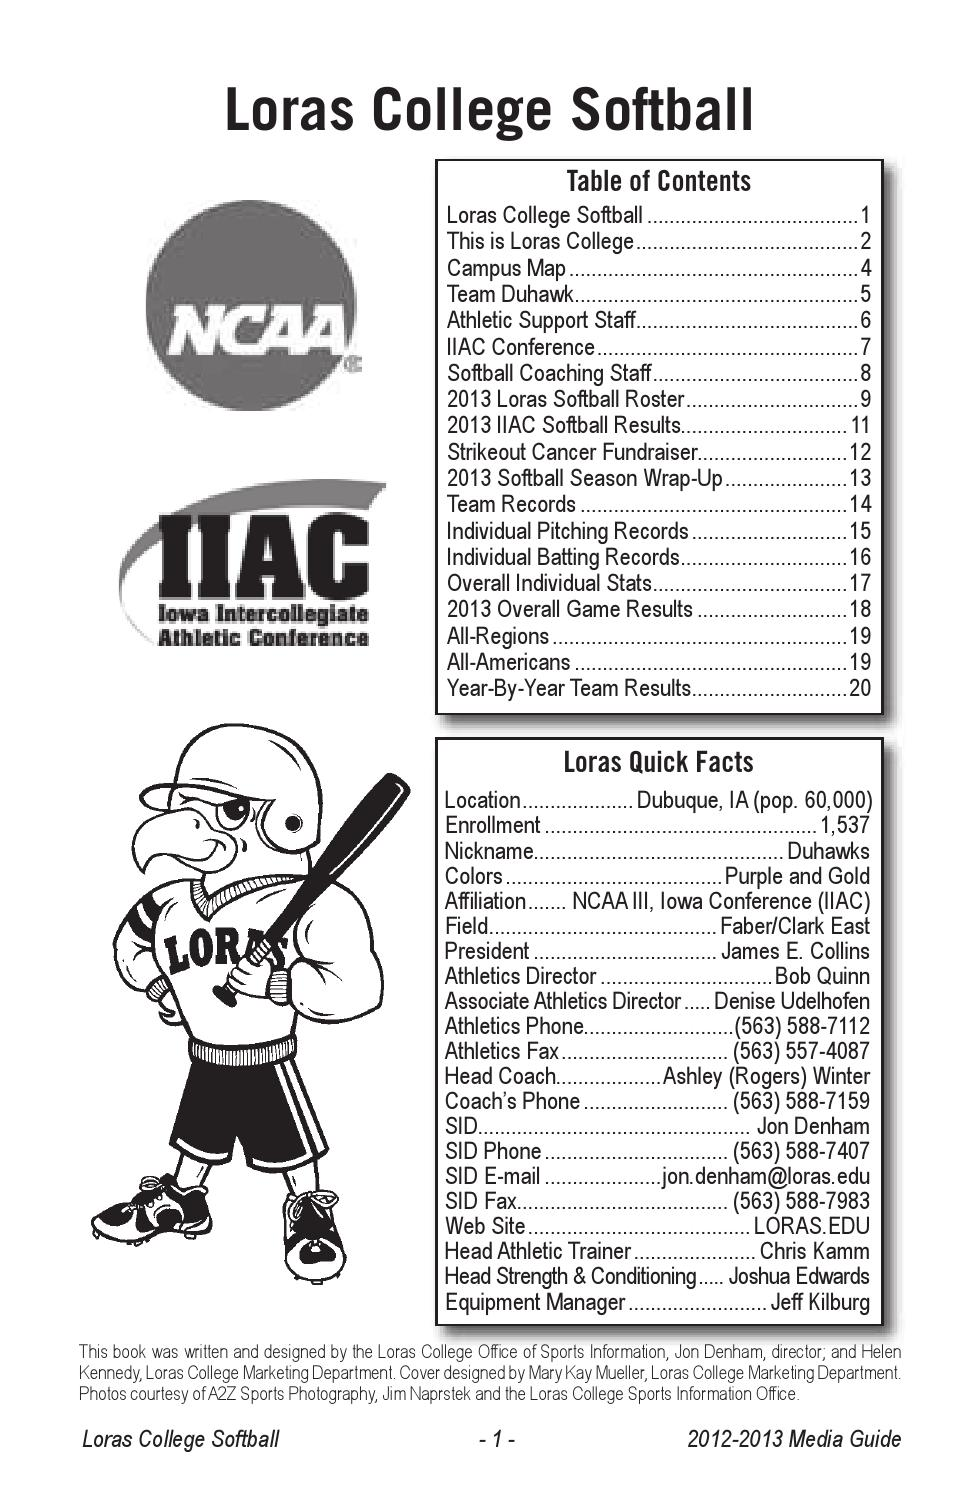 Loras Campus Map.Loras College 2013 Softball Media Guide By Loras College Issuu